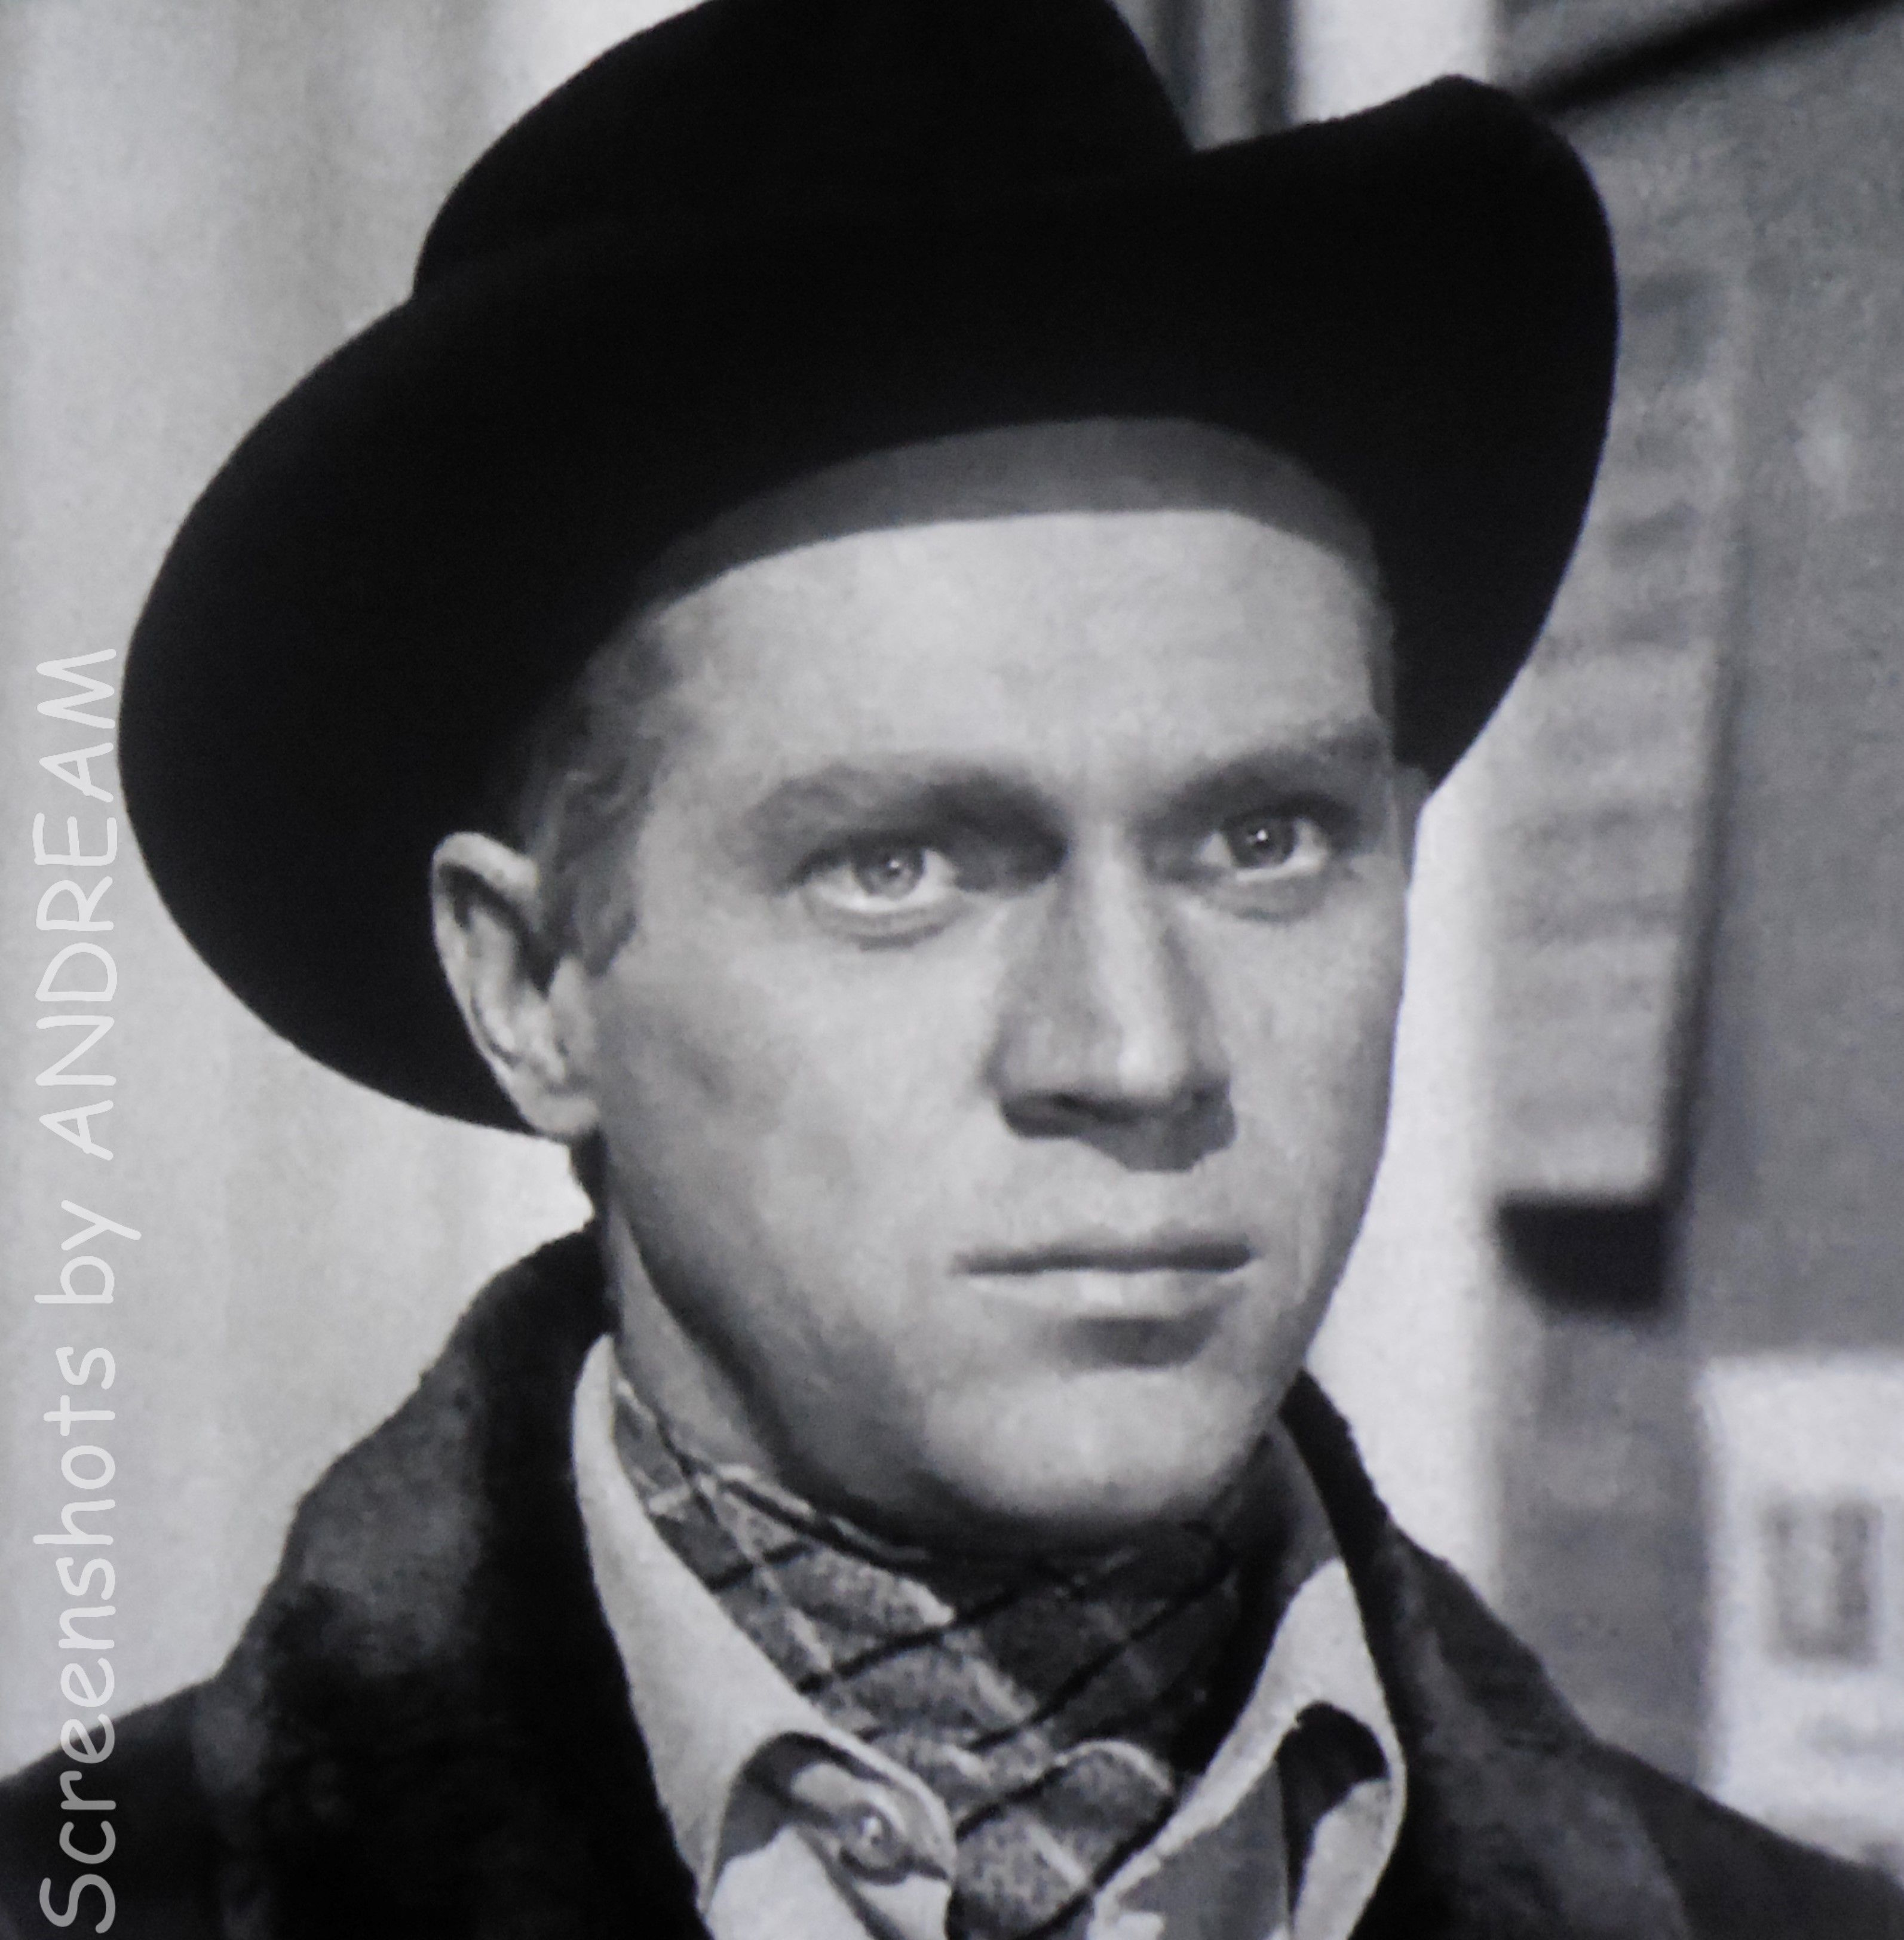 Steve Mcqueen Guest Star The Bounty Hunter 1958 Trackdown Pilot Episode For His Series Wanted Dead Or Alive Which Premiered Later That Year